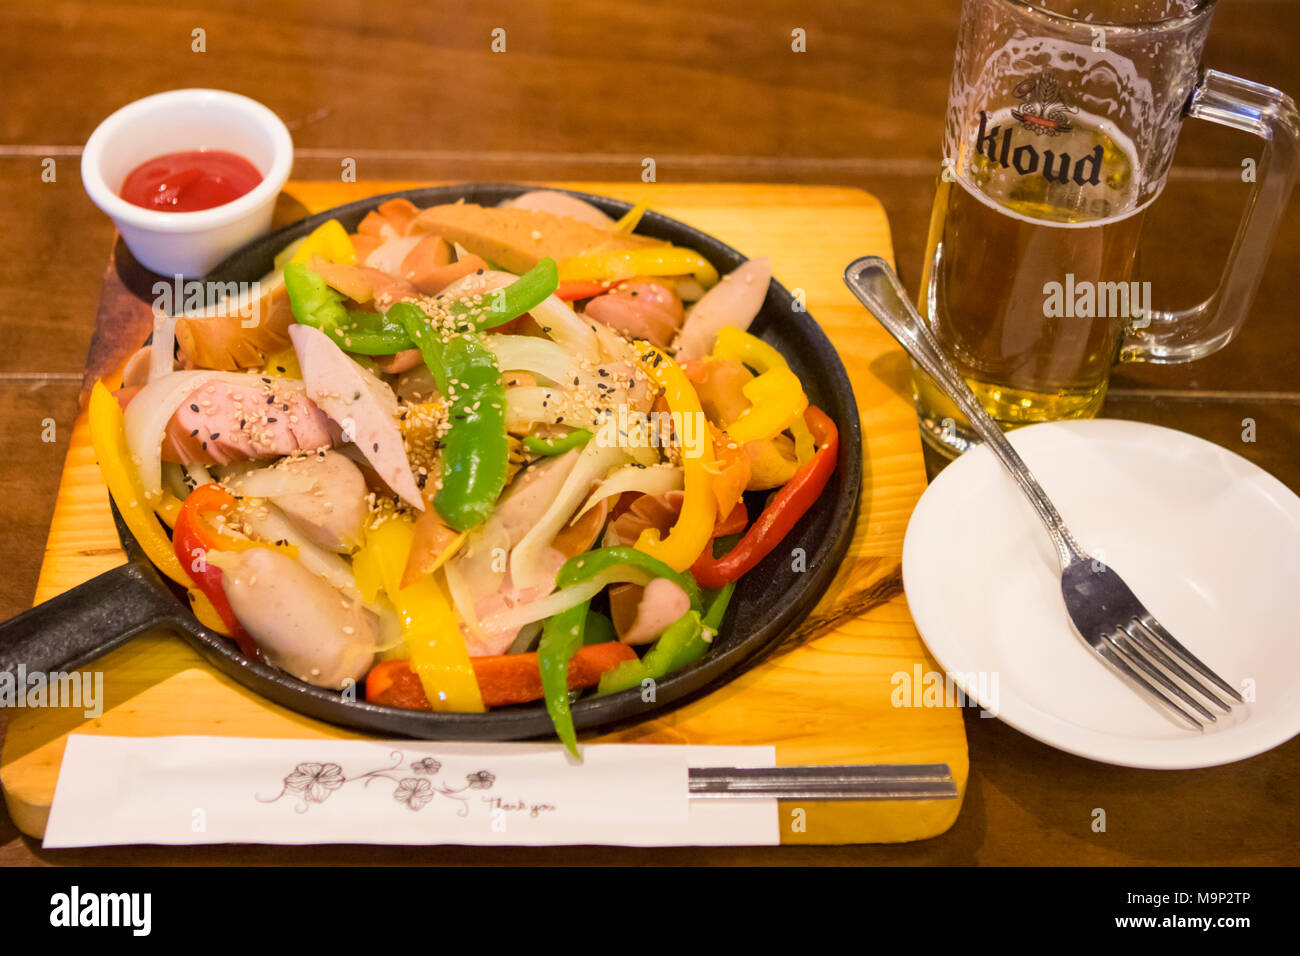 A typical dish of South Korea to eat with beer after skiing: grilled sausage and sweet peppers.  The Alpensia Resort is a ski resort and a tourist attraction. It is located on the territory of the township of Daegwallyeong-myeon, in the county of Pyeongchang, hosting the Winter Olympics in February 2018.  The ski resort is approximately 2.5 hours from Seoul or Incheon Airport by car, predominantly all motorway.   Alpensia has six slopes for skiing and snowboarding, with runs up to 1.4 km (0.87 mi) long, for beginners and advanced skiers, and an area reserved for snowboarders. While the resort Stock Photo